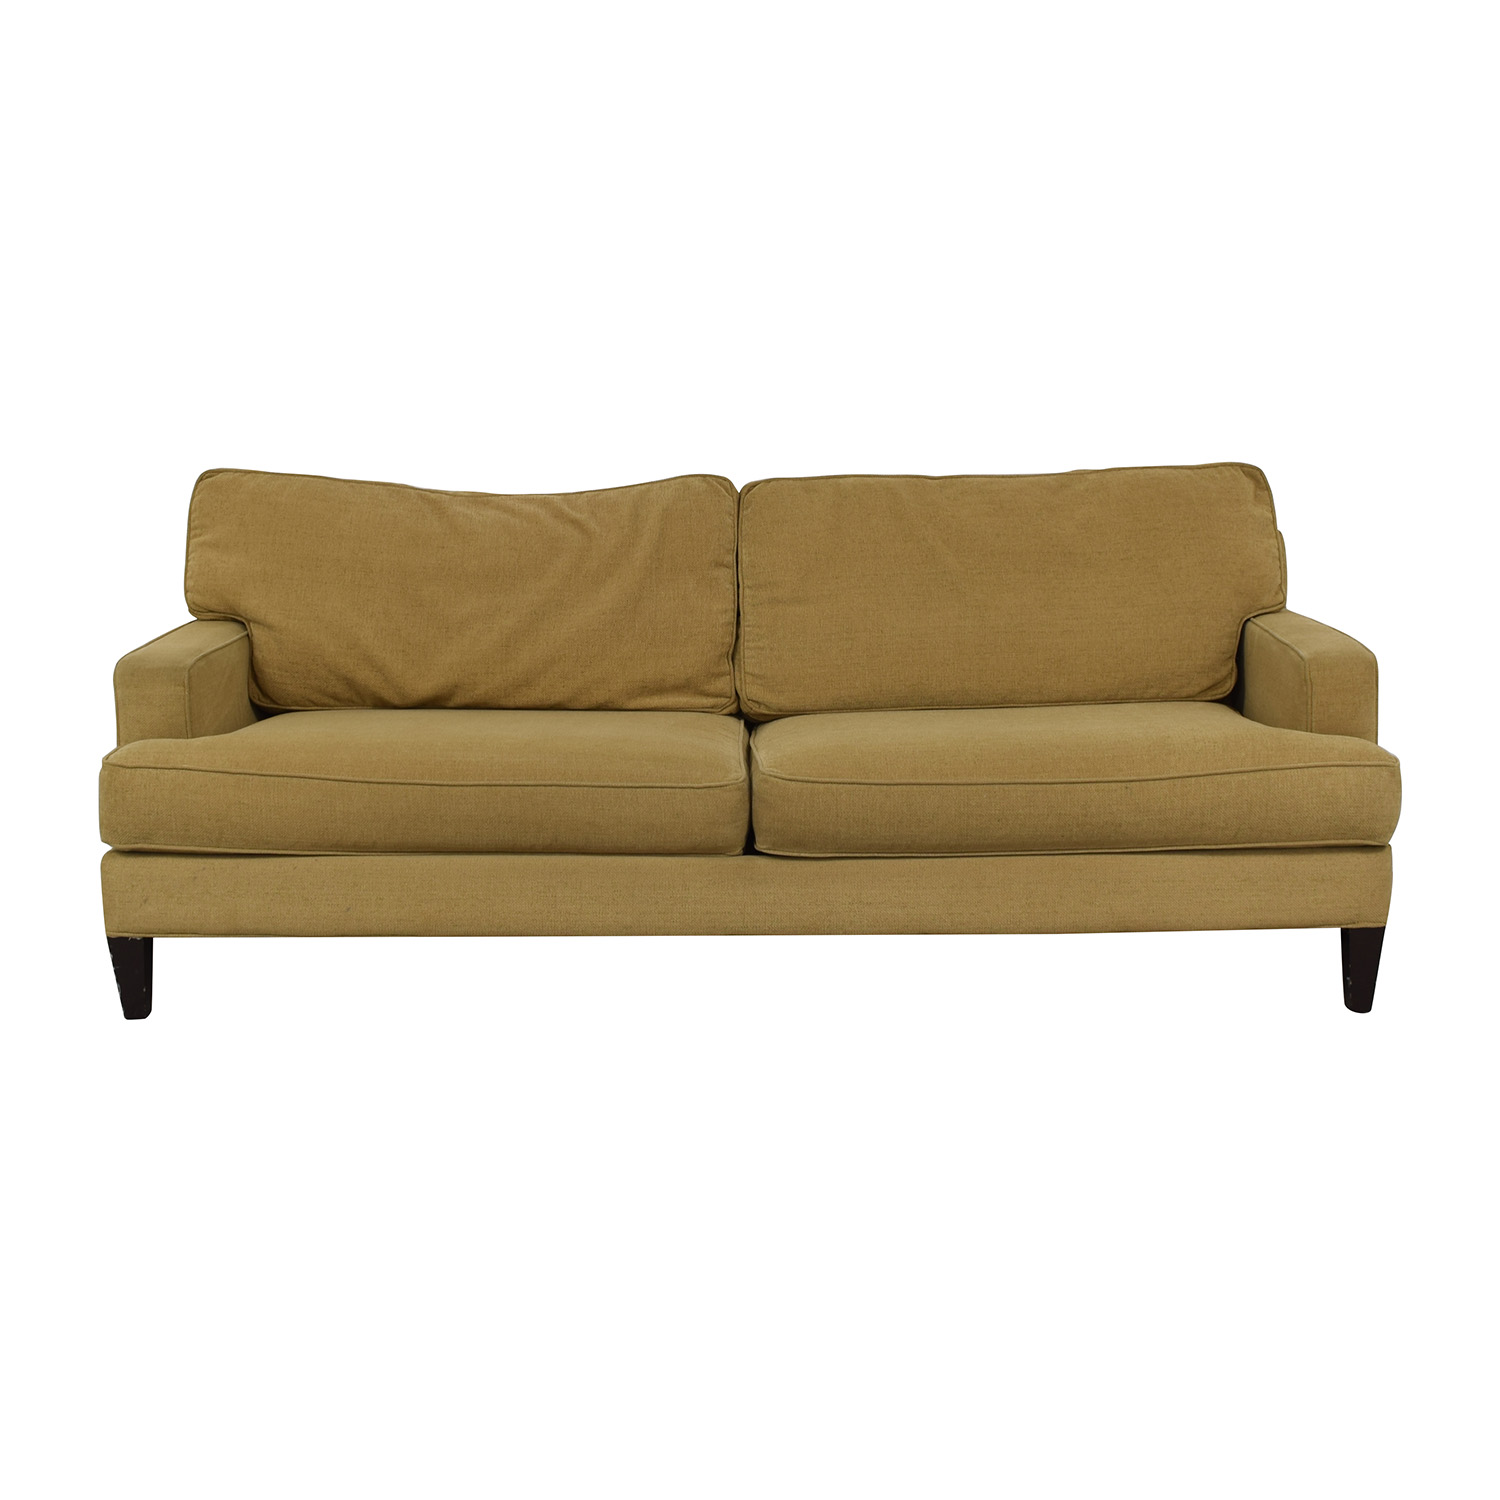 shop Pottery Barn Pottery Barn Tan Two-Cushion Couch online